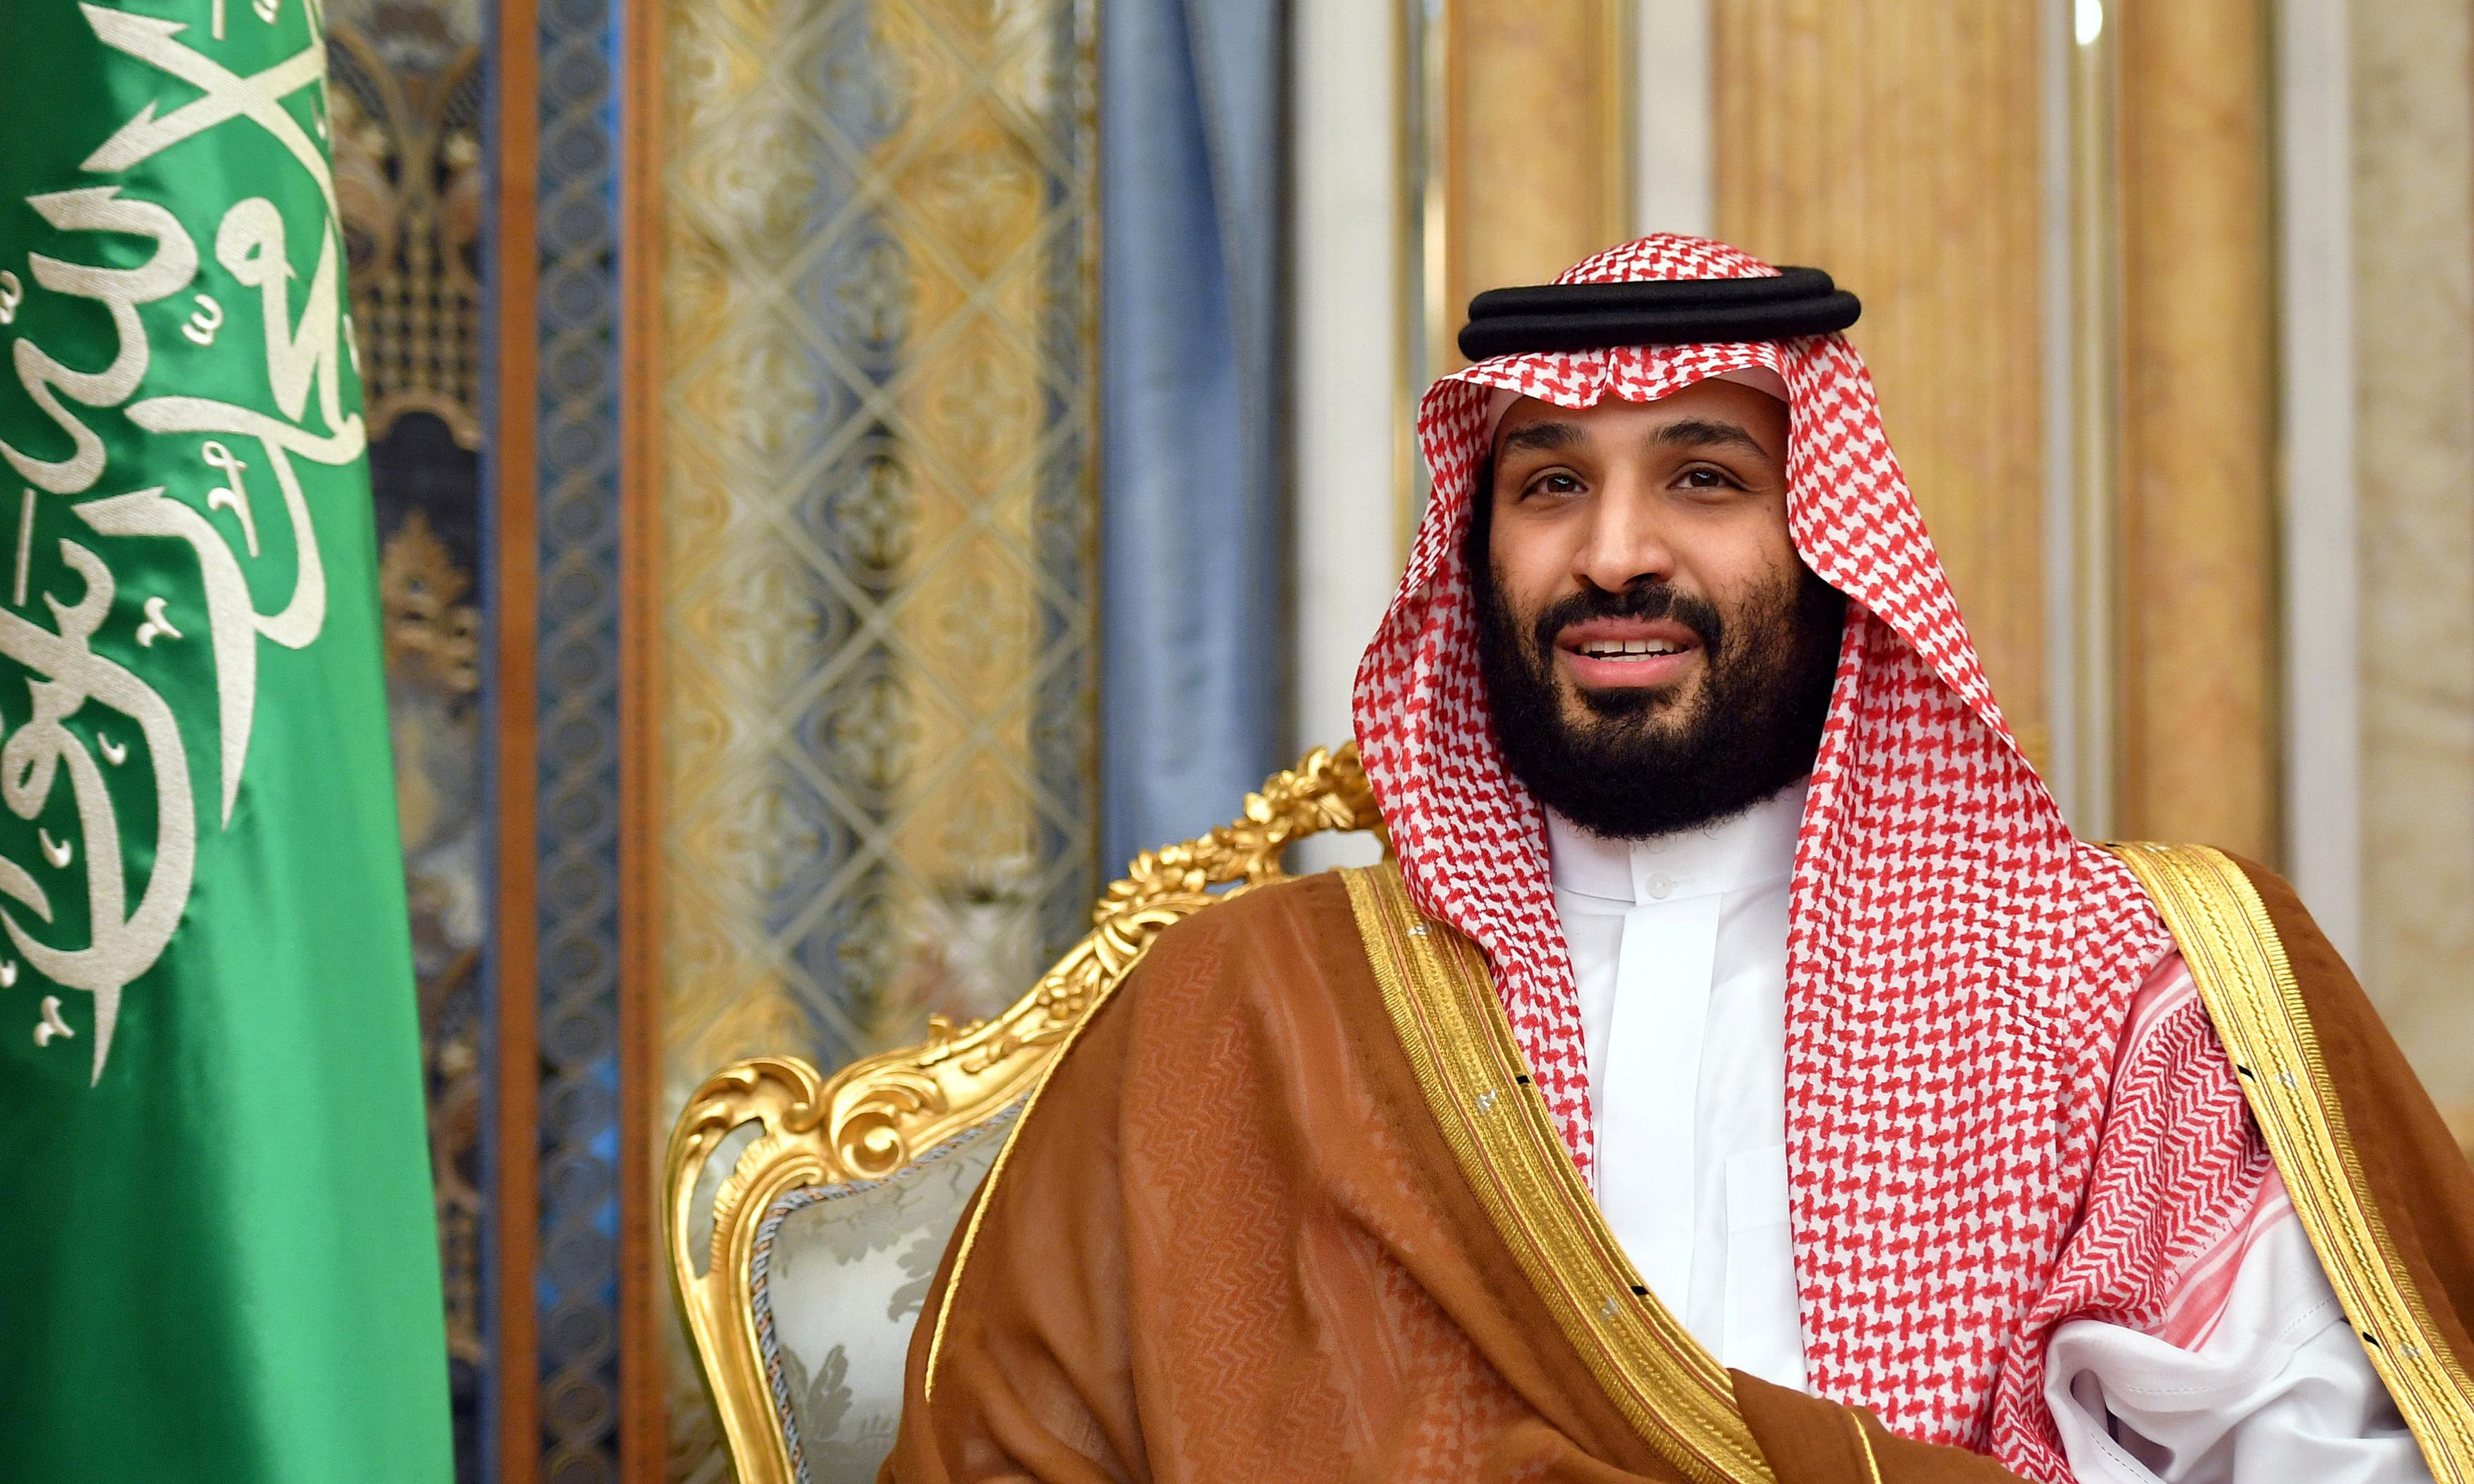 Saudi Arabia: arrests of dissidents and torture allegations continue